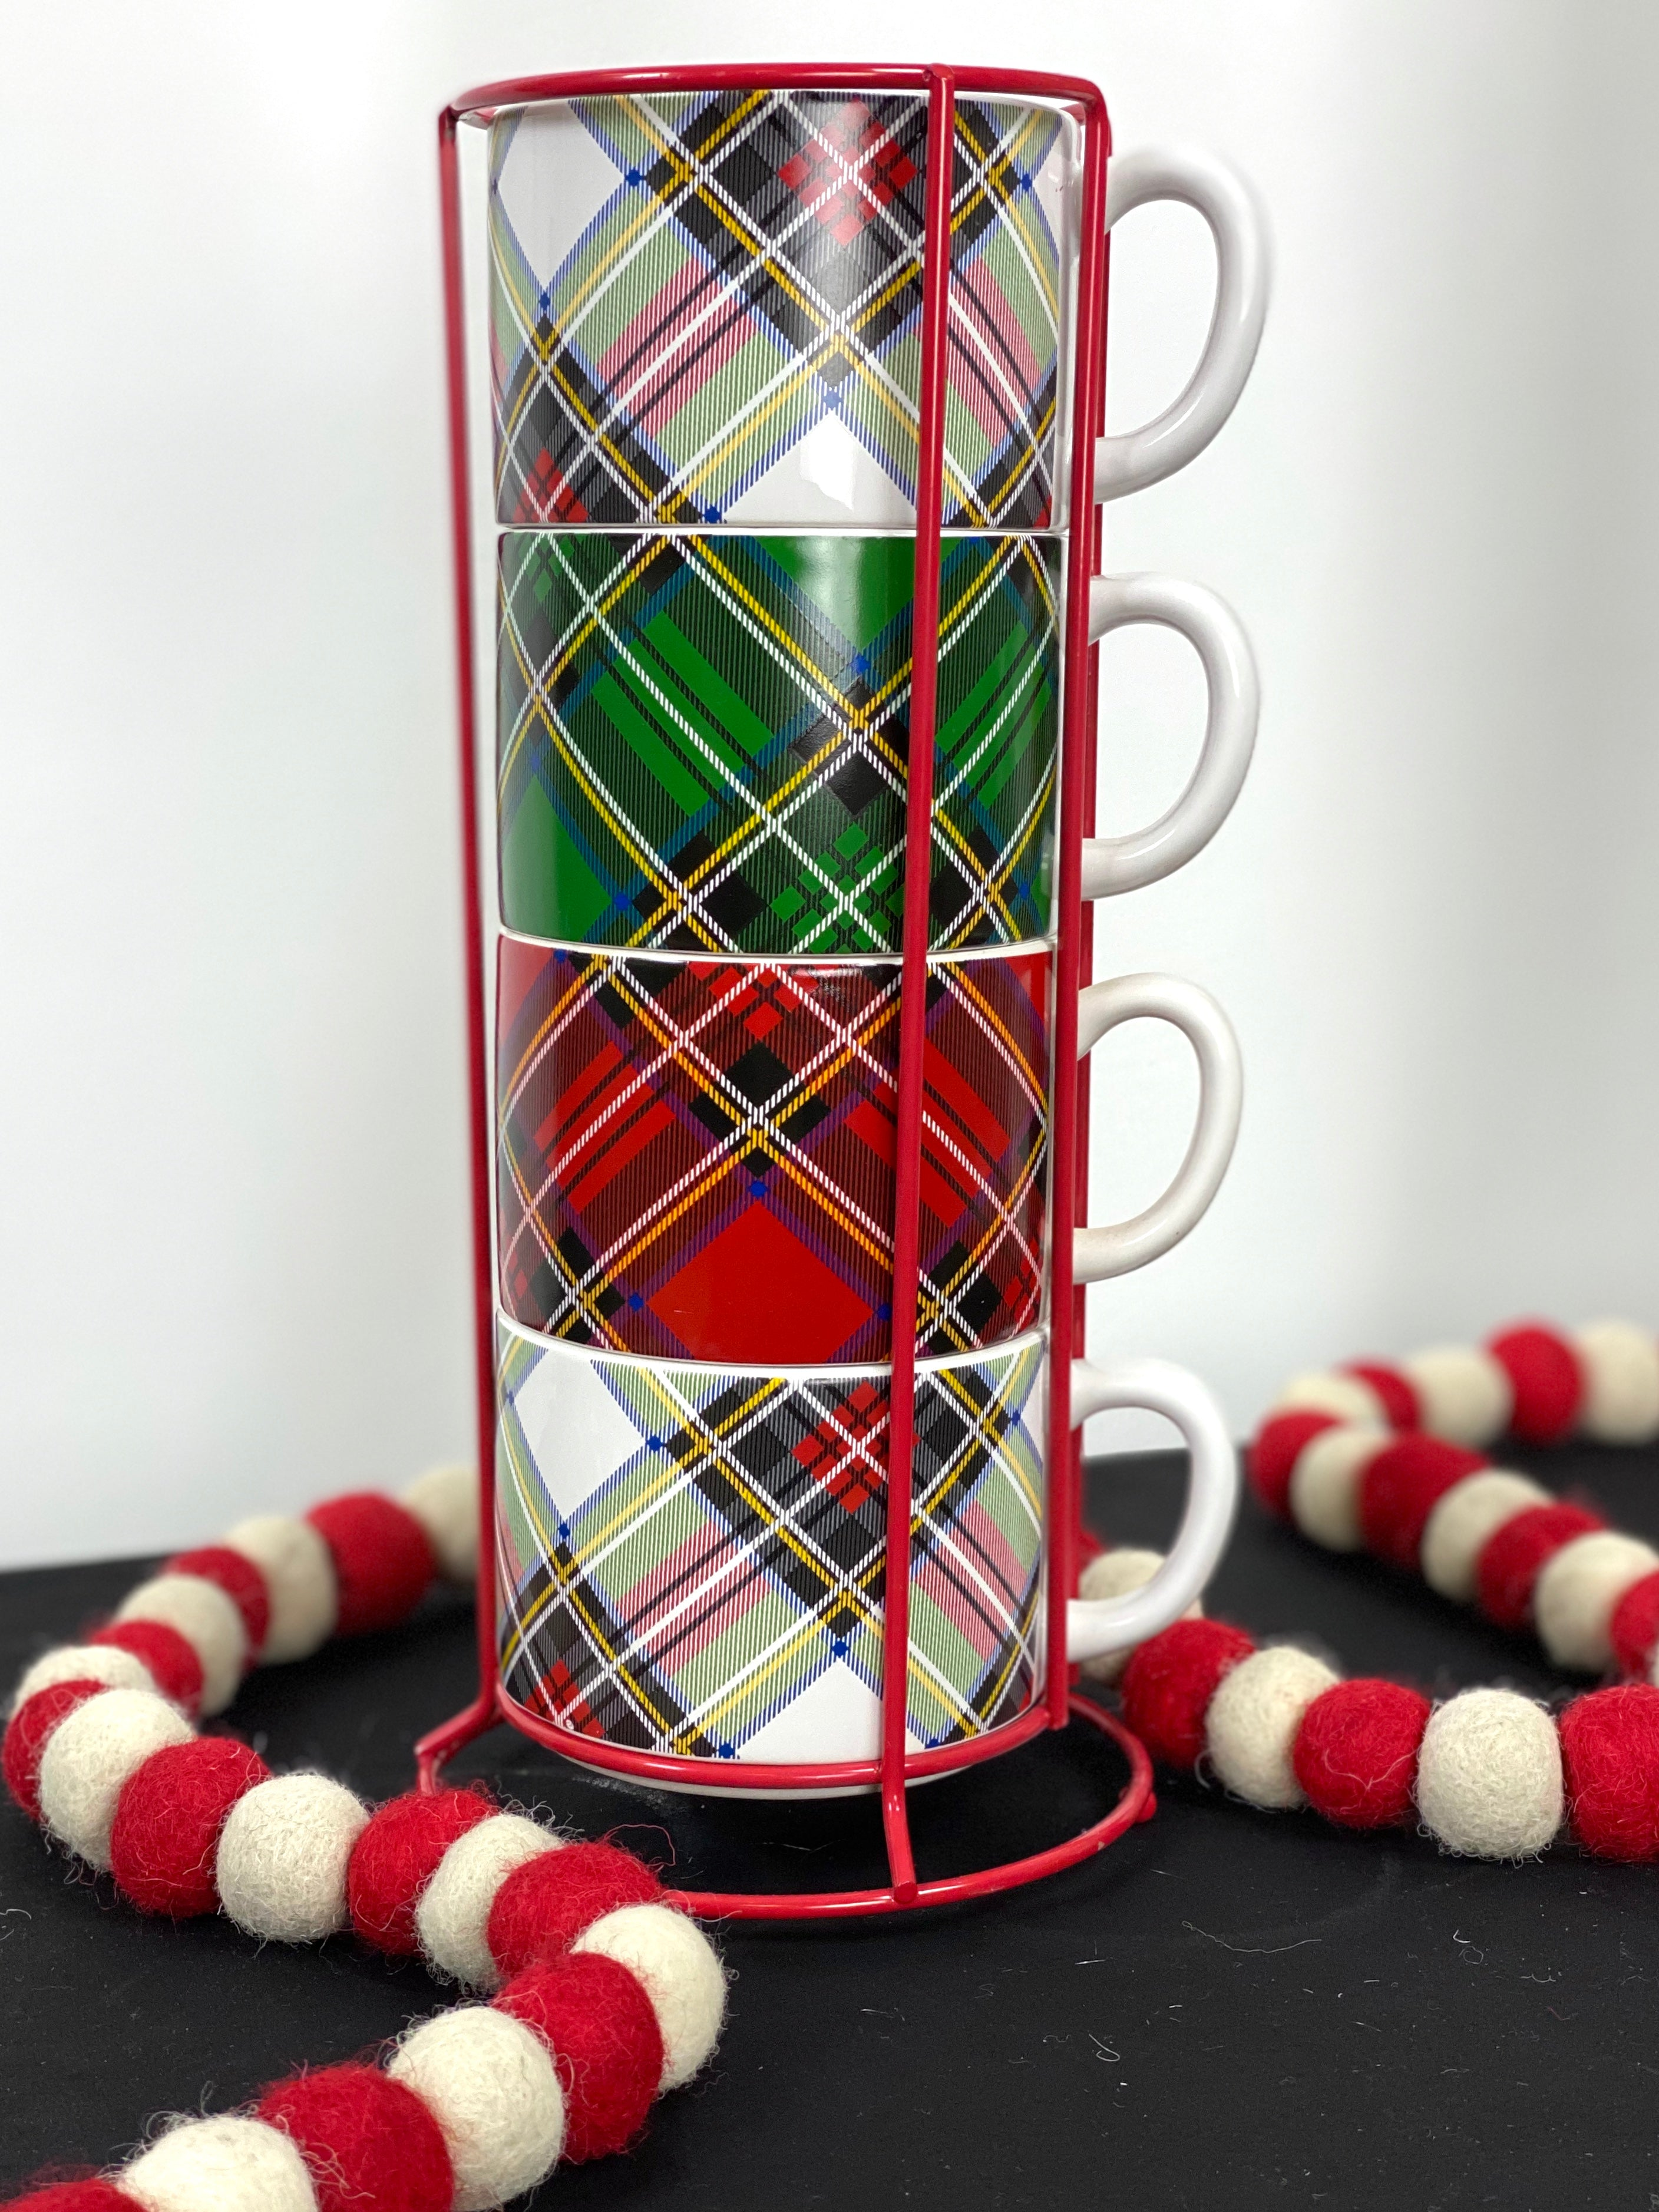 NEW Tartan Stacking Coffee Mugs in Christmas Colors Red, Green, and White